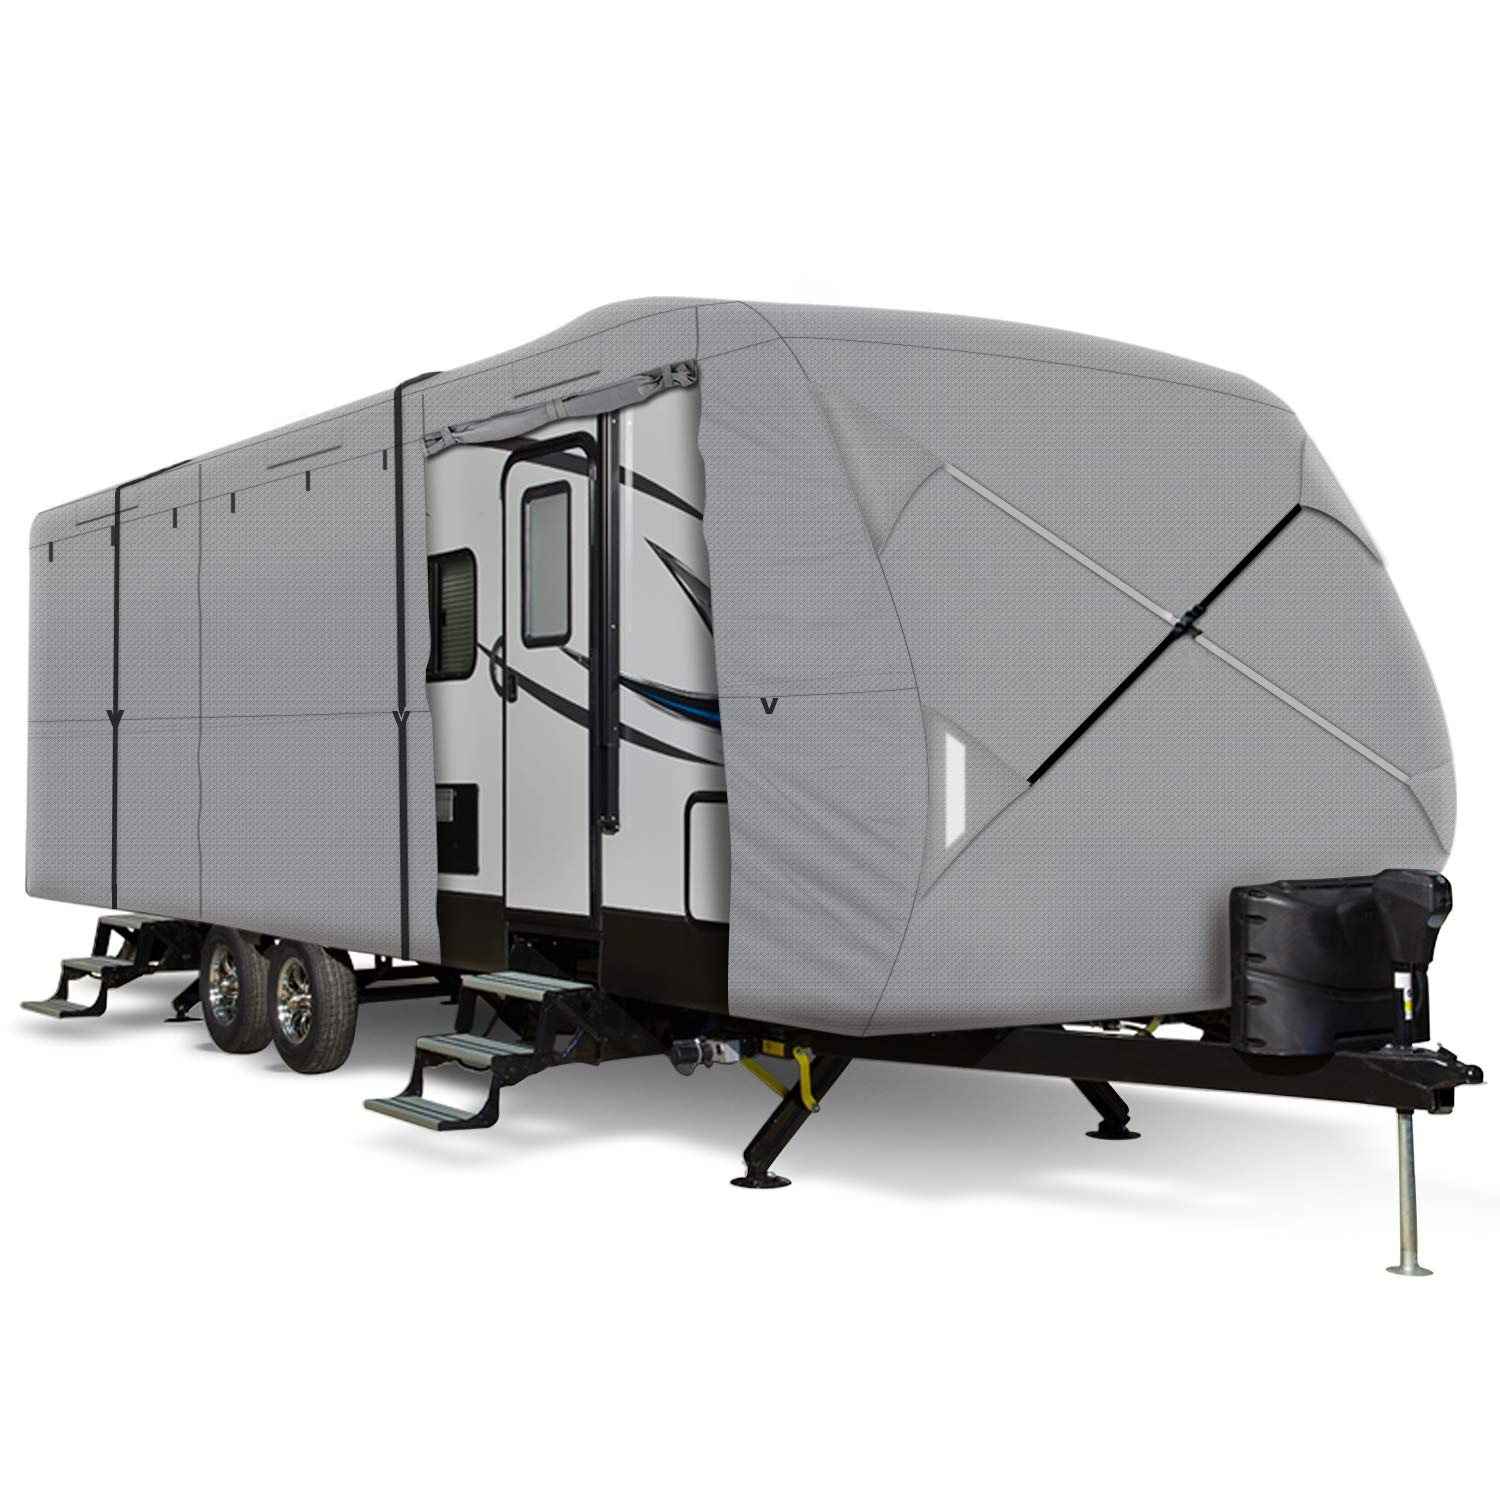 Travel Trailer Rv Cover Fits 14 15 16 Feet Trailer Camper 3 Layer